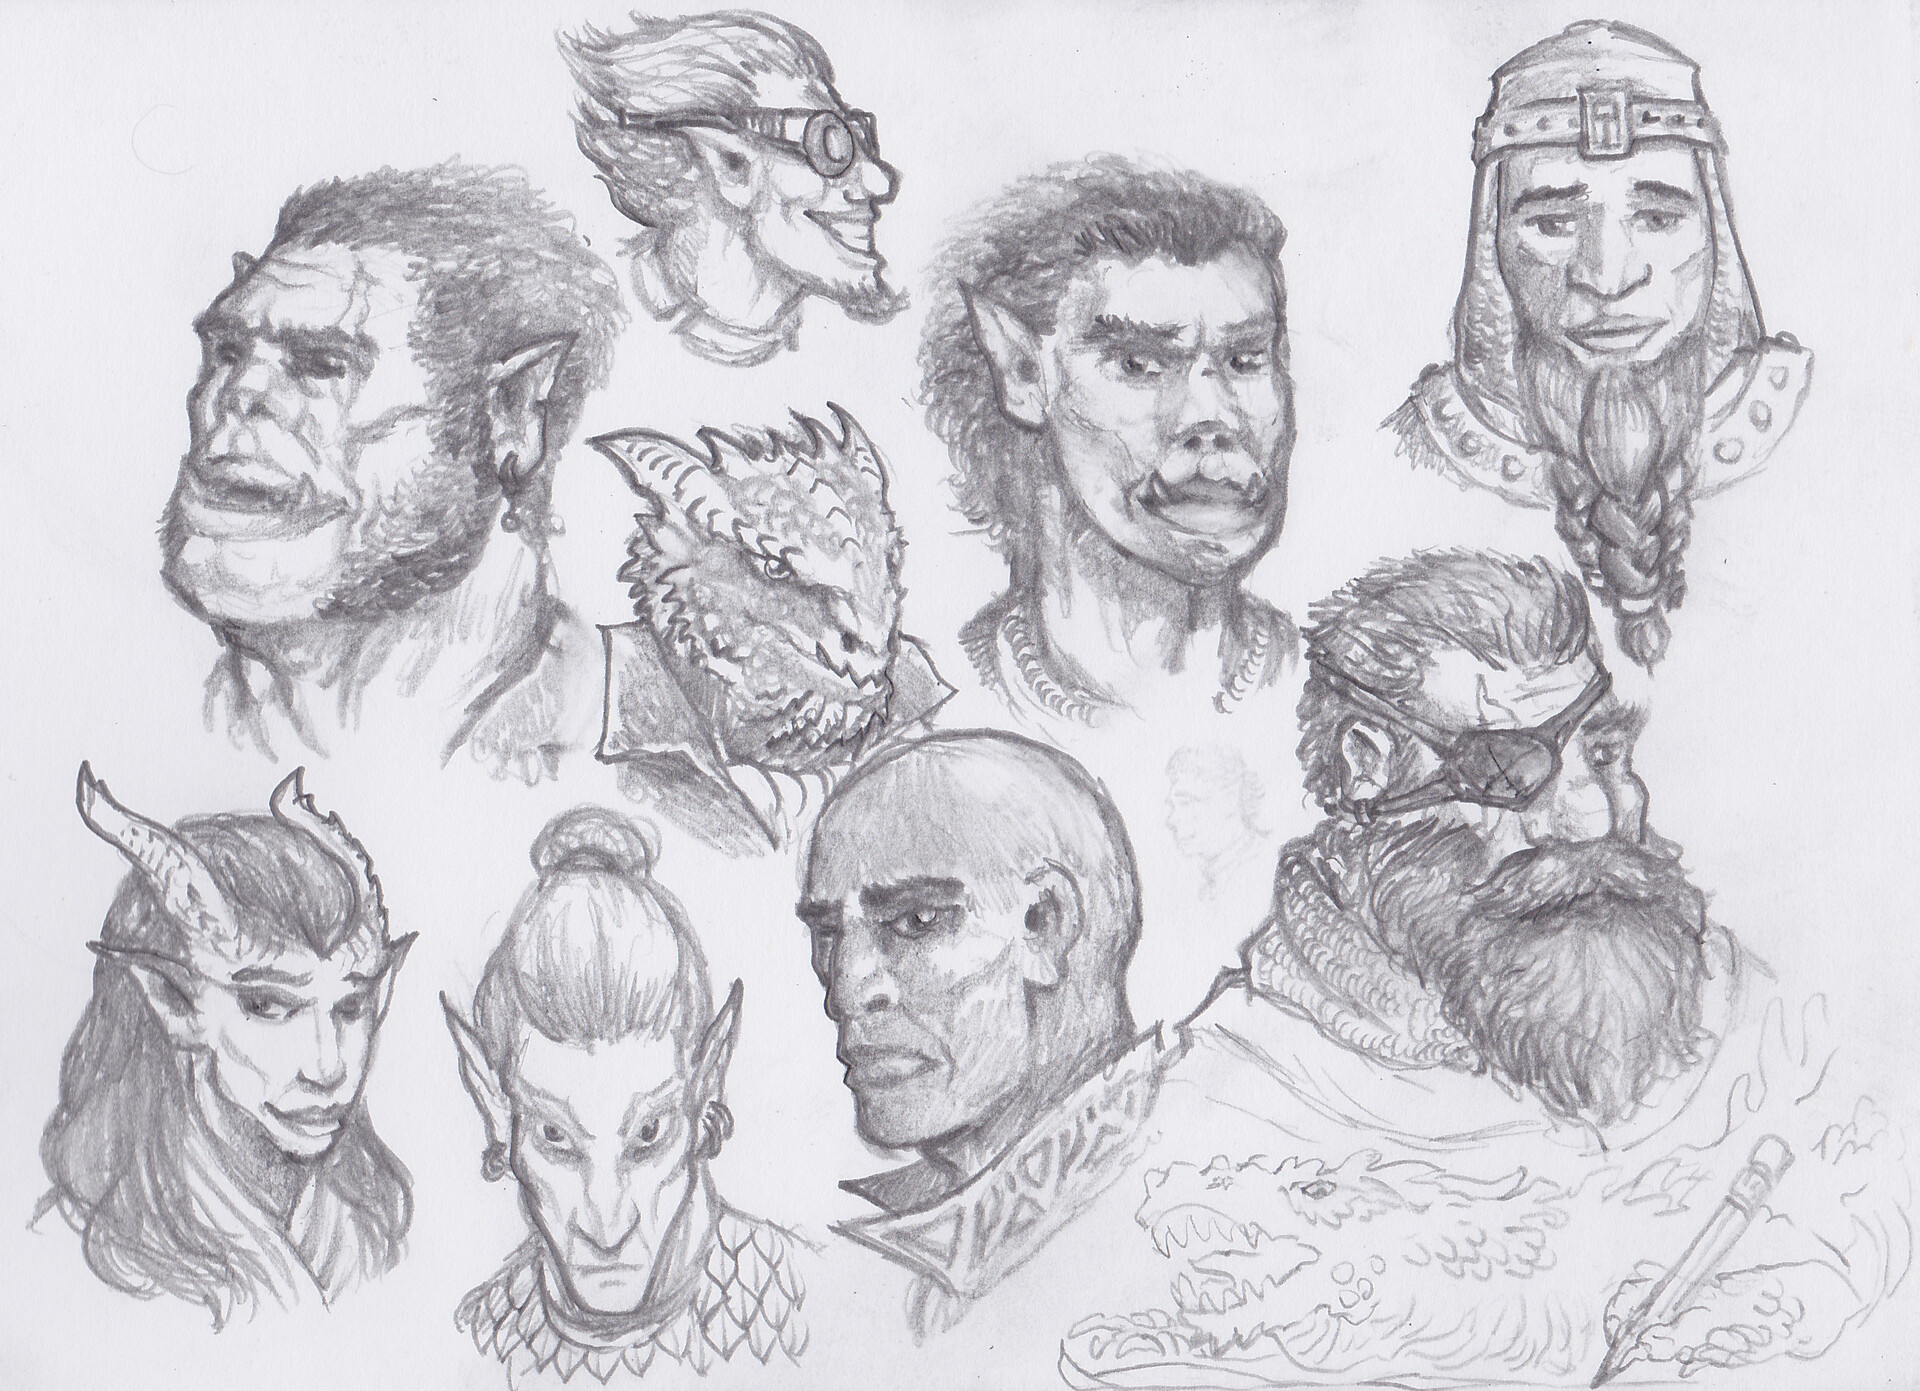 Artstation Headshots Dnd Races 5e Matt Brown